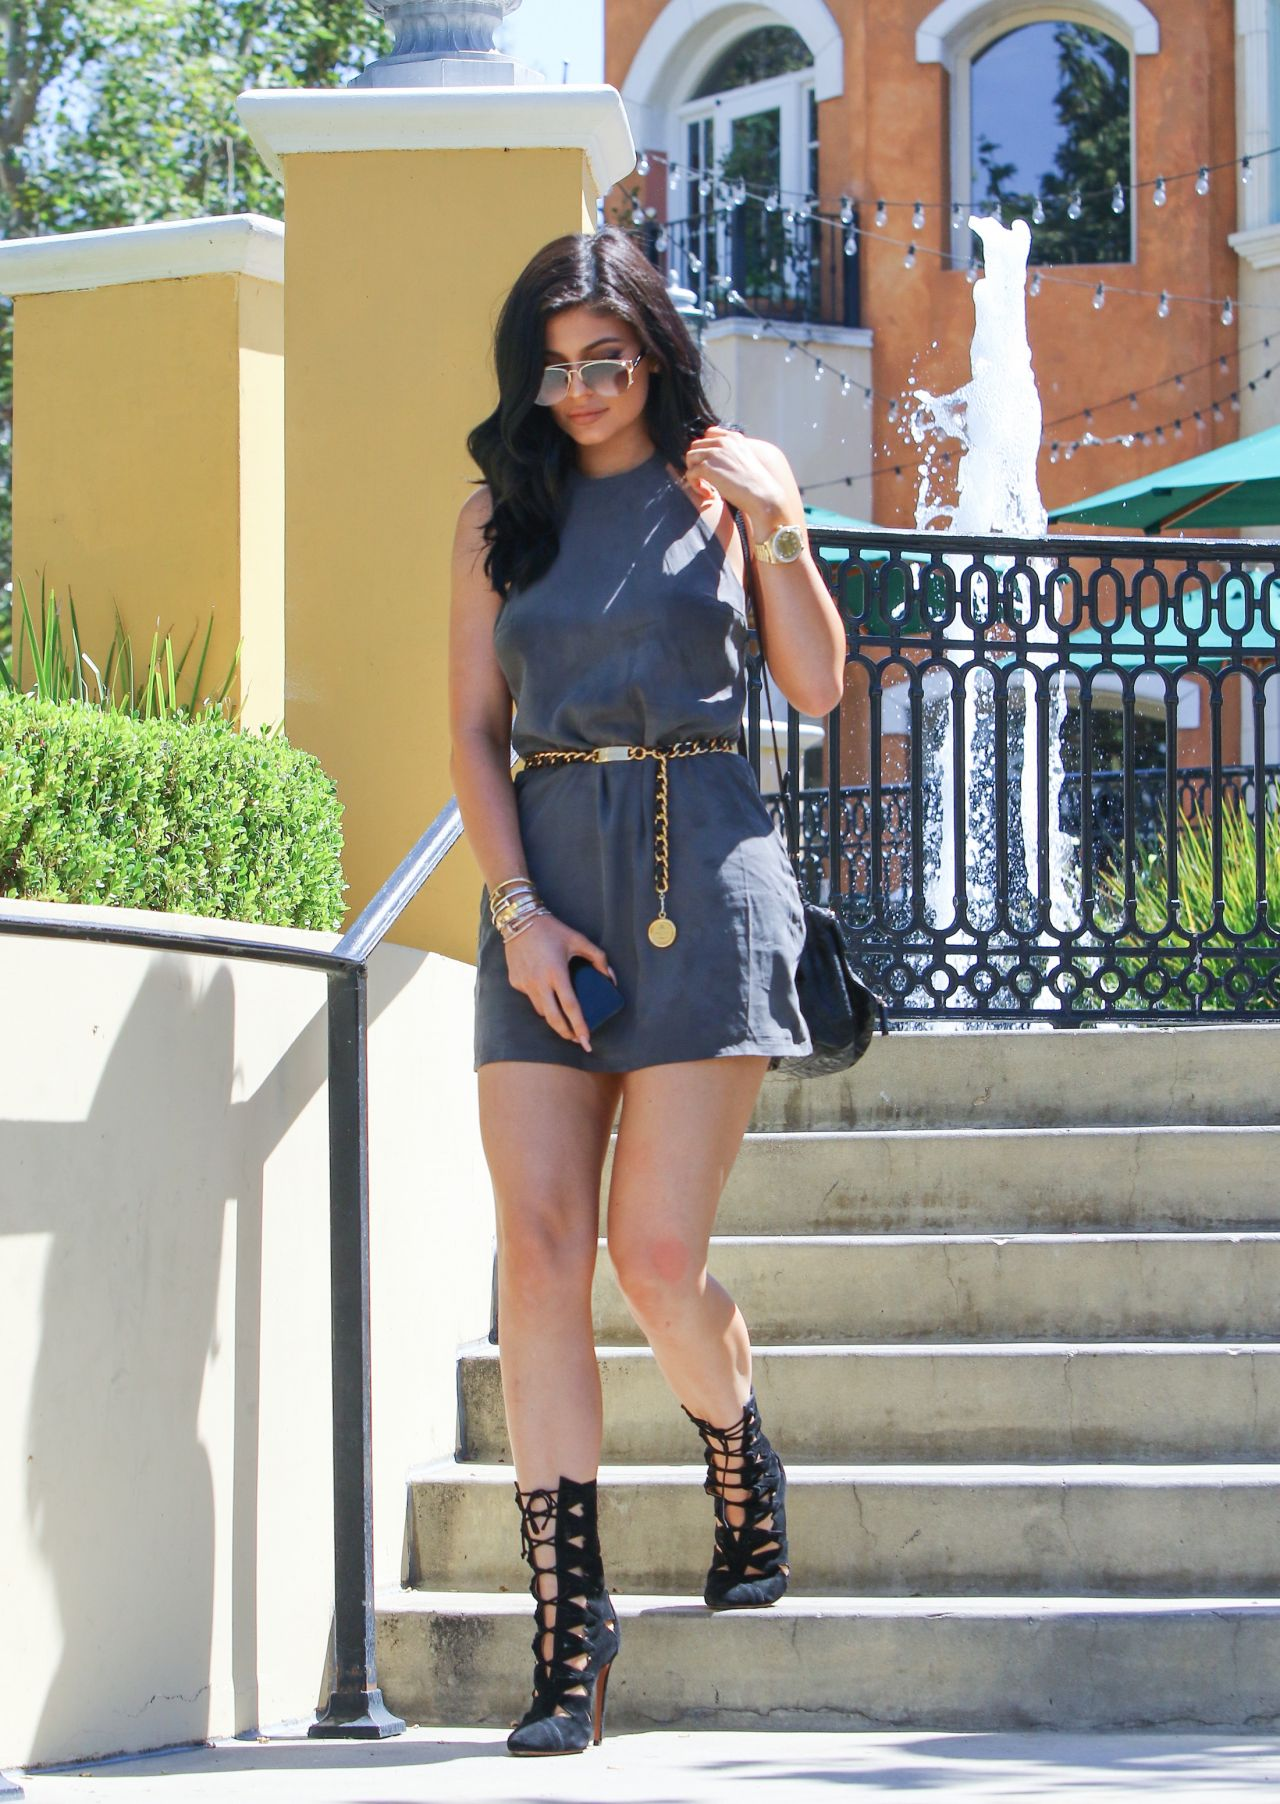 kylie-jenner-leggy-in-mini-dress-out-for-lunch-at-sugar-fish-in-calabasas-july-2015_4